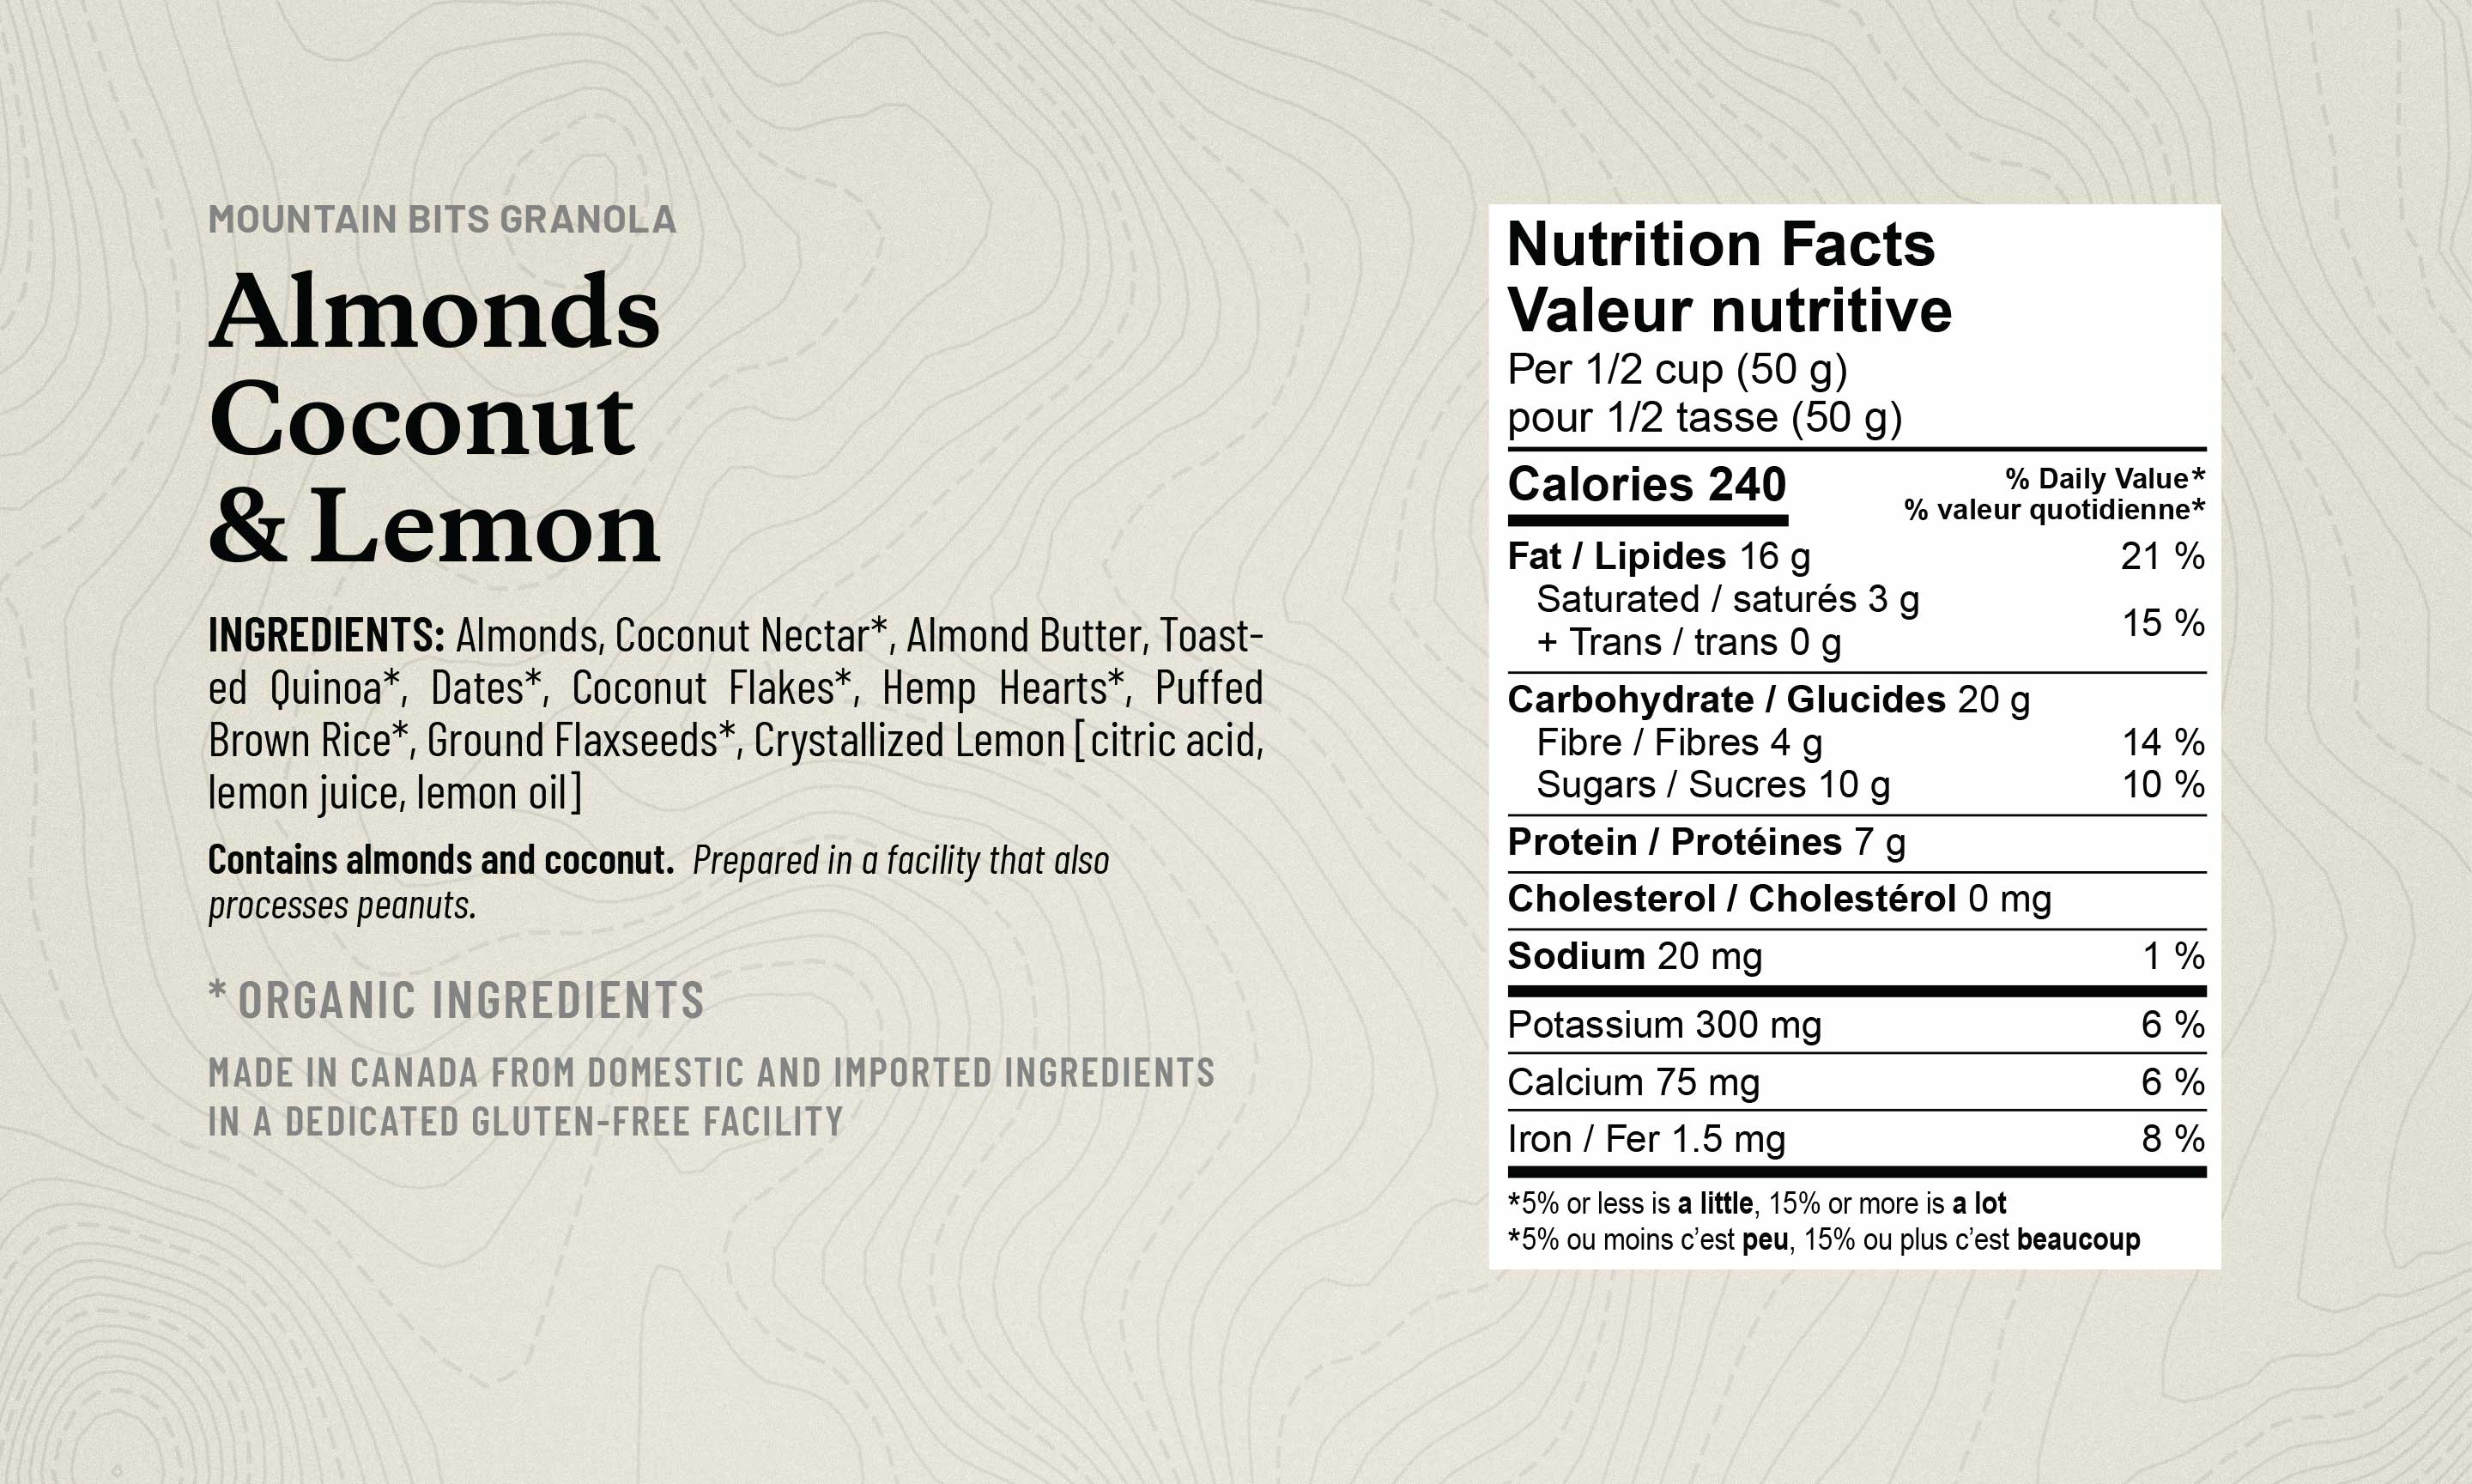 Image of Almond Coconut and Lemon Mountain Bits granola ingredient List, noting Organic Ingredients and Nutrition Table